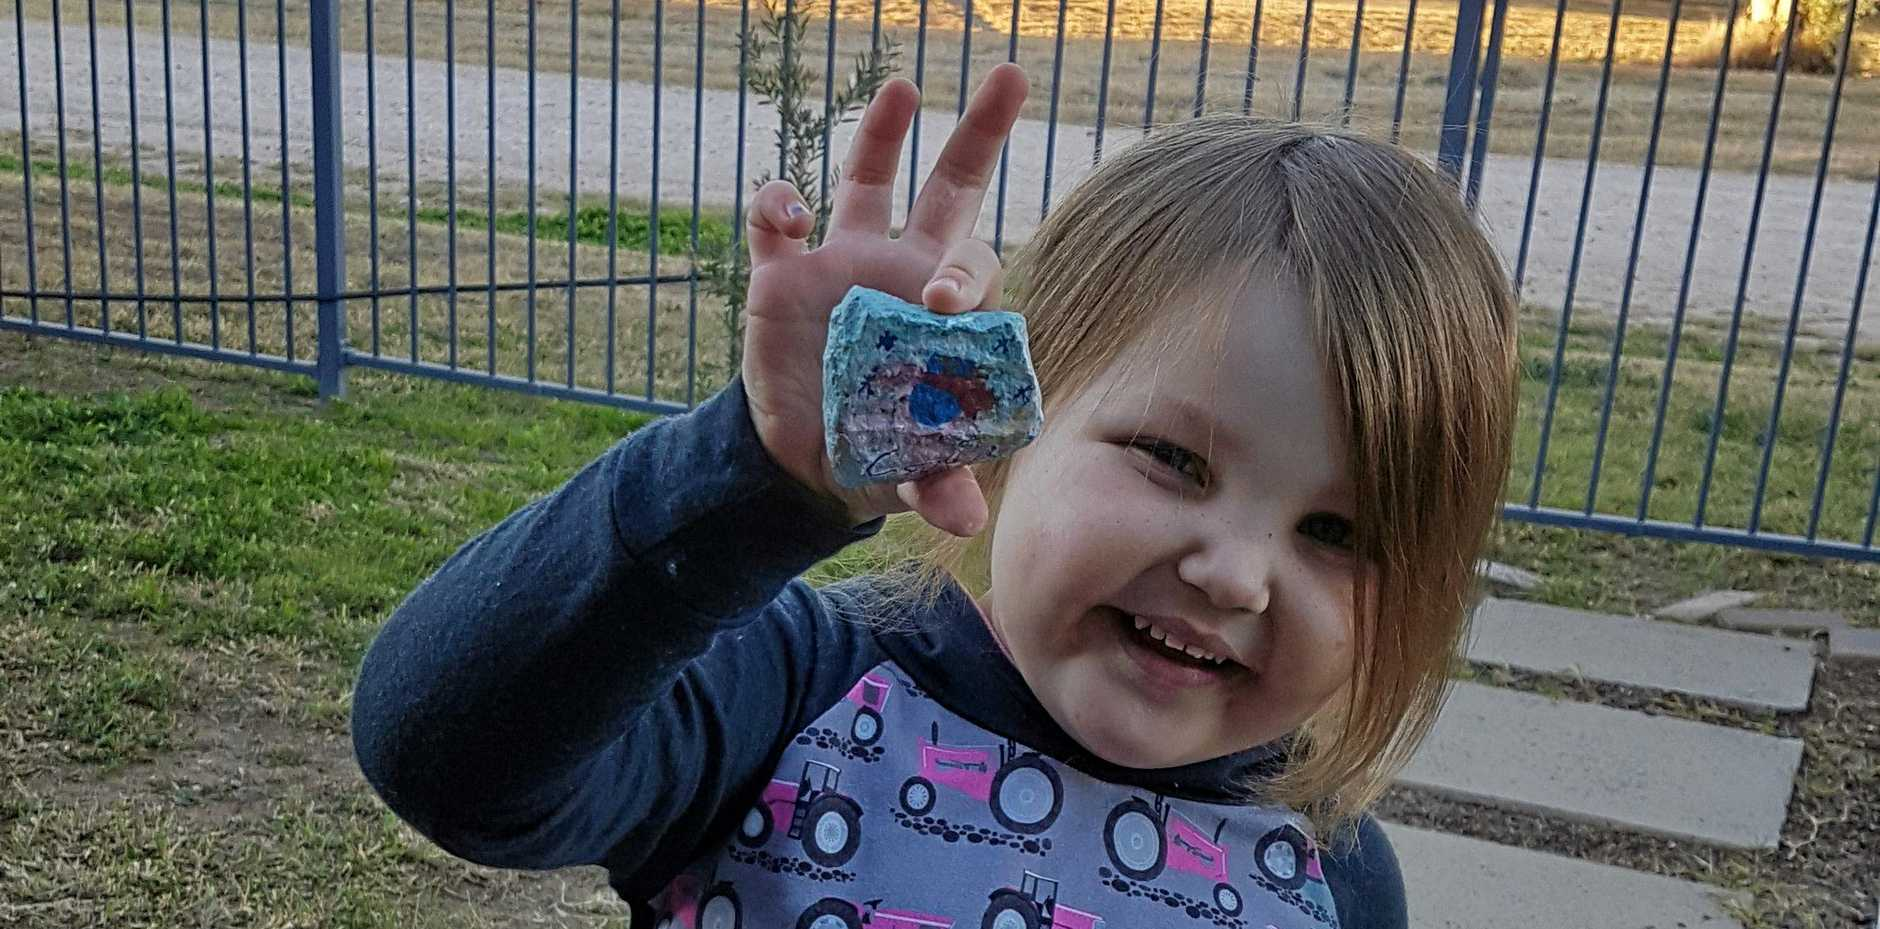 ROMA ROCKS: Three-year-old Skylynn Crosbie was ecstatic to find one of the painted rocks at Woolworths.